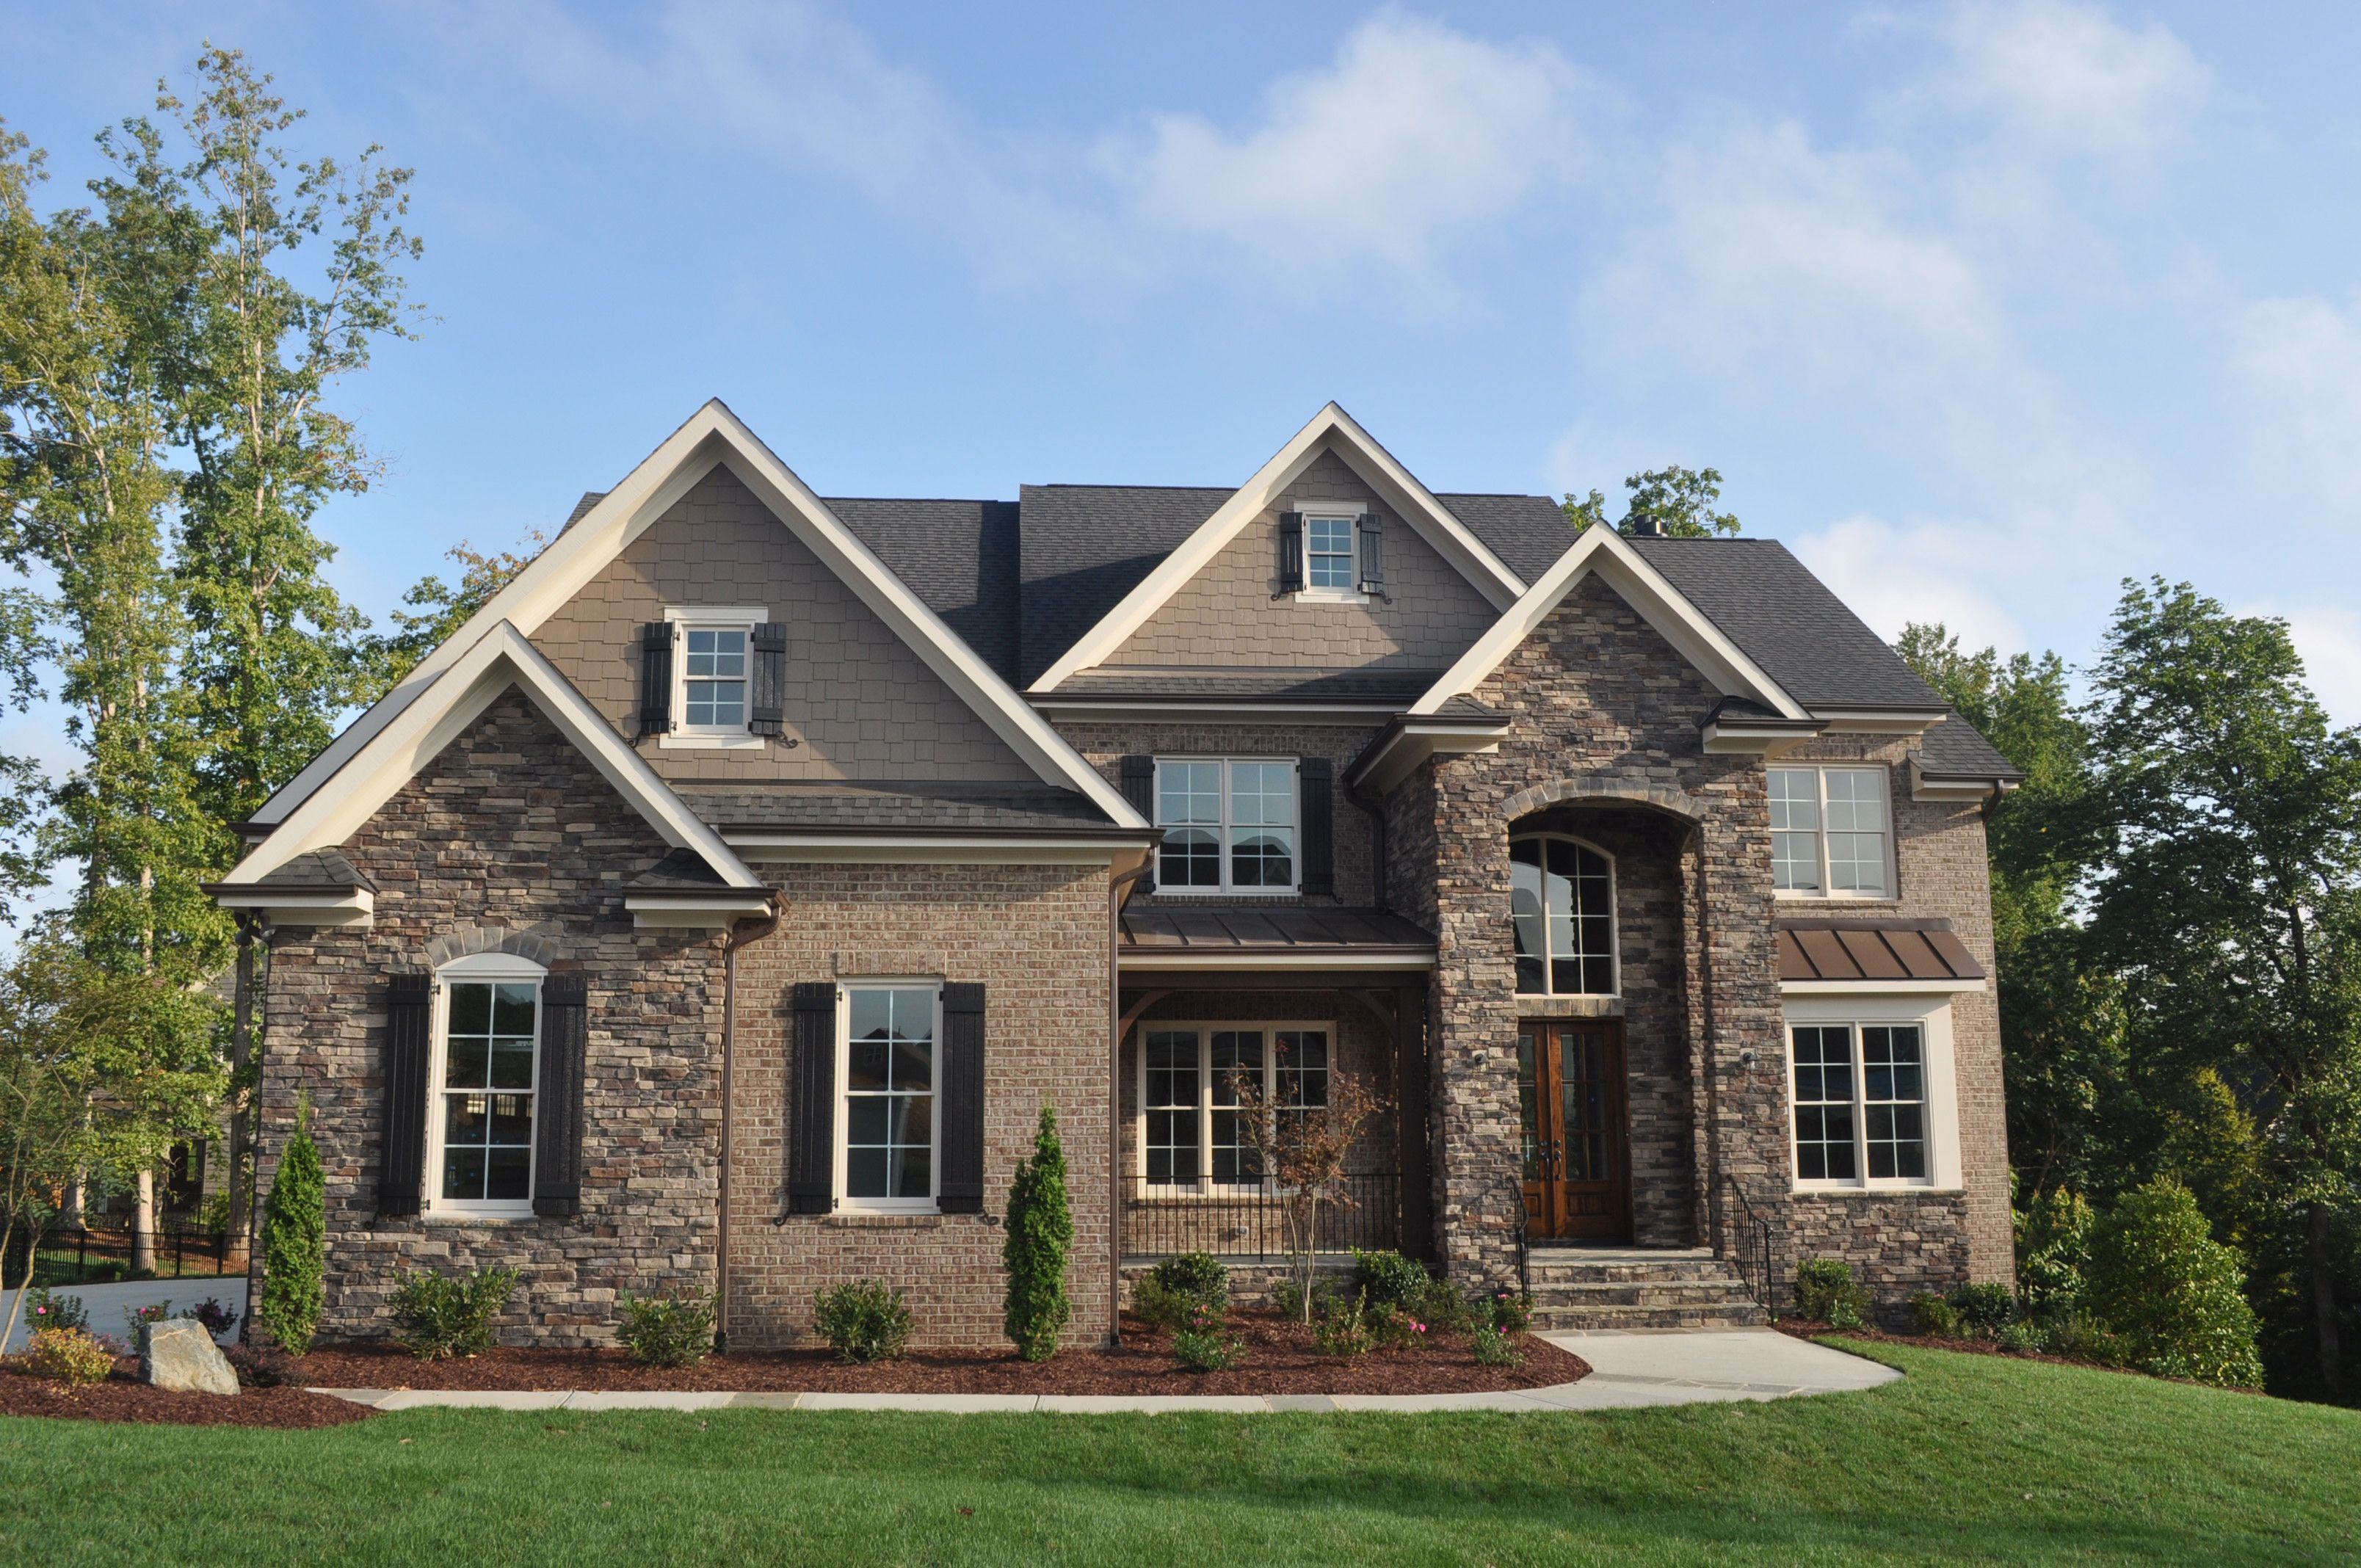 Brick and stone exterior with a little siding pinterest for Exterior home accents